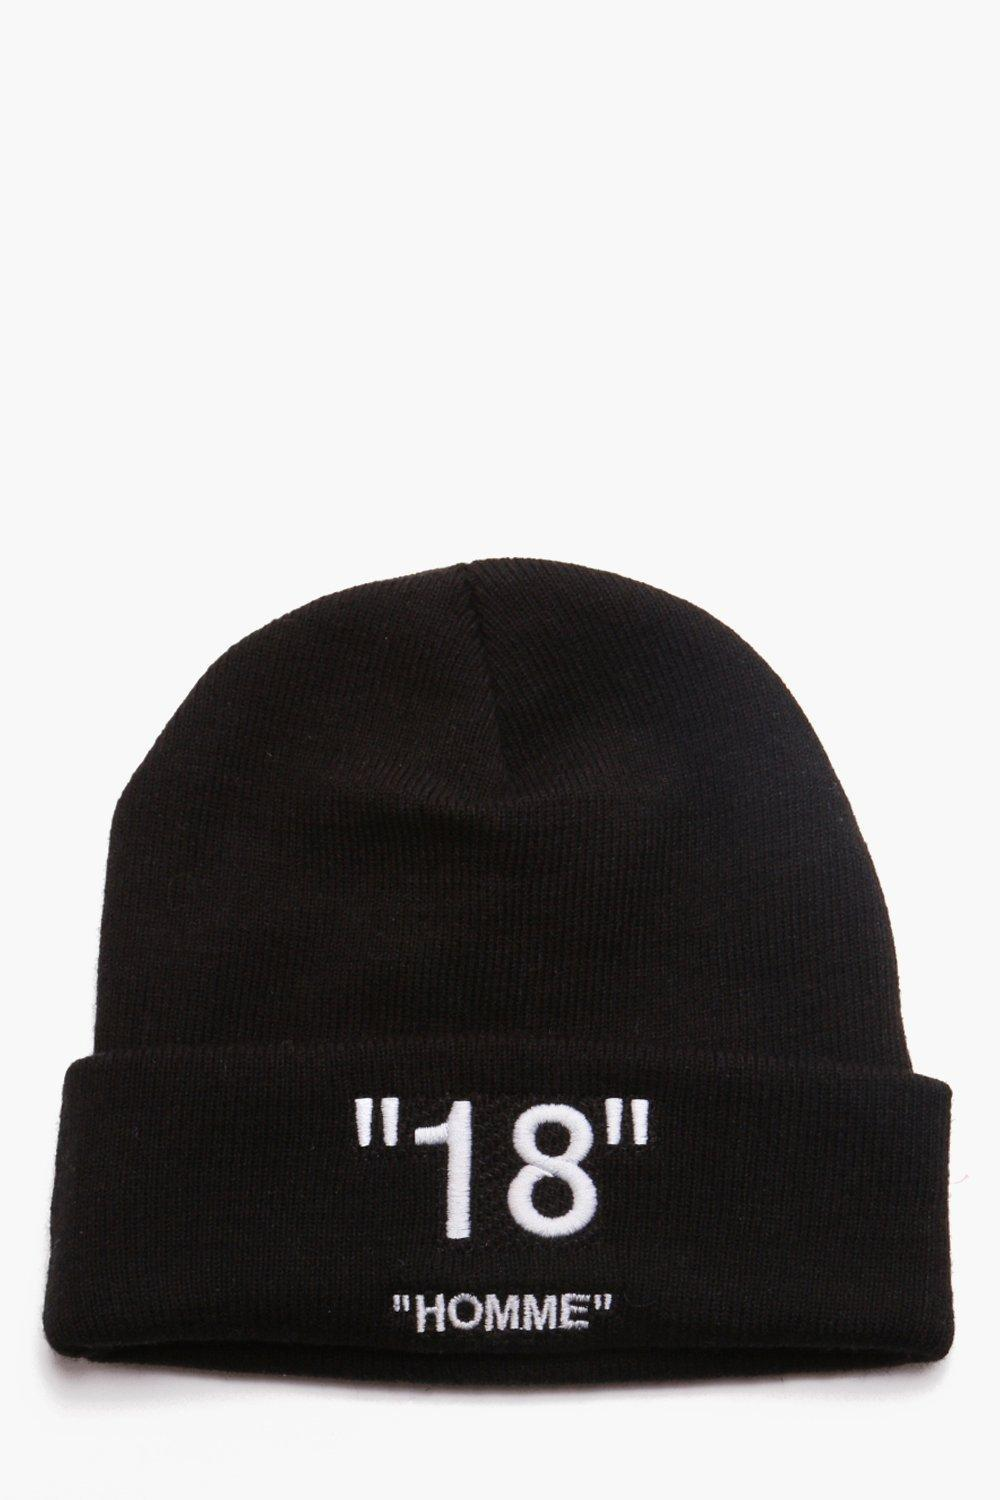 602420dc3d0 Lyst - Boohoo Man Certified 18 Homme Embroidered Beanie in Black for Men